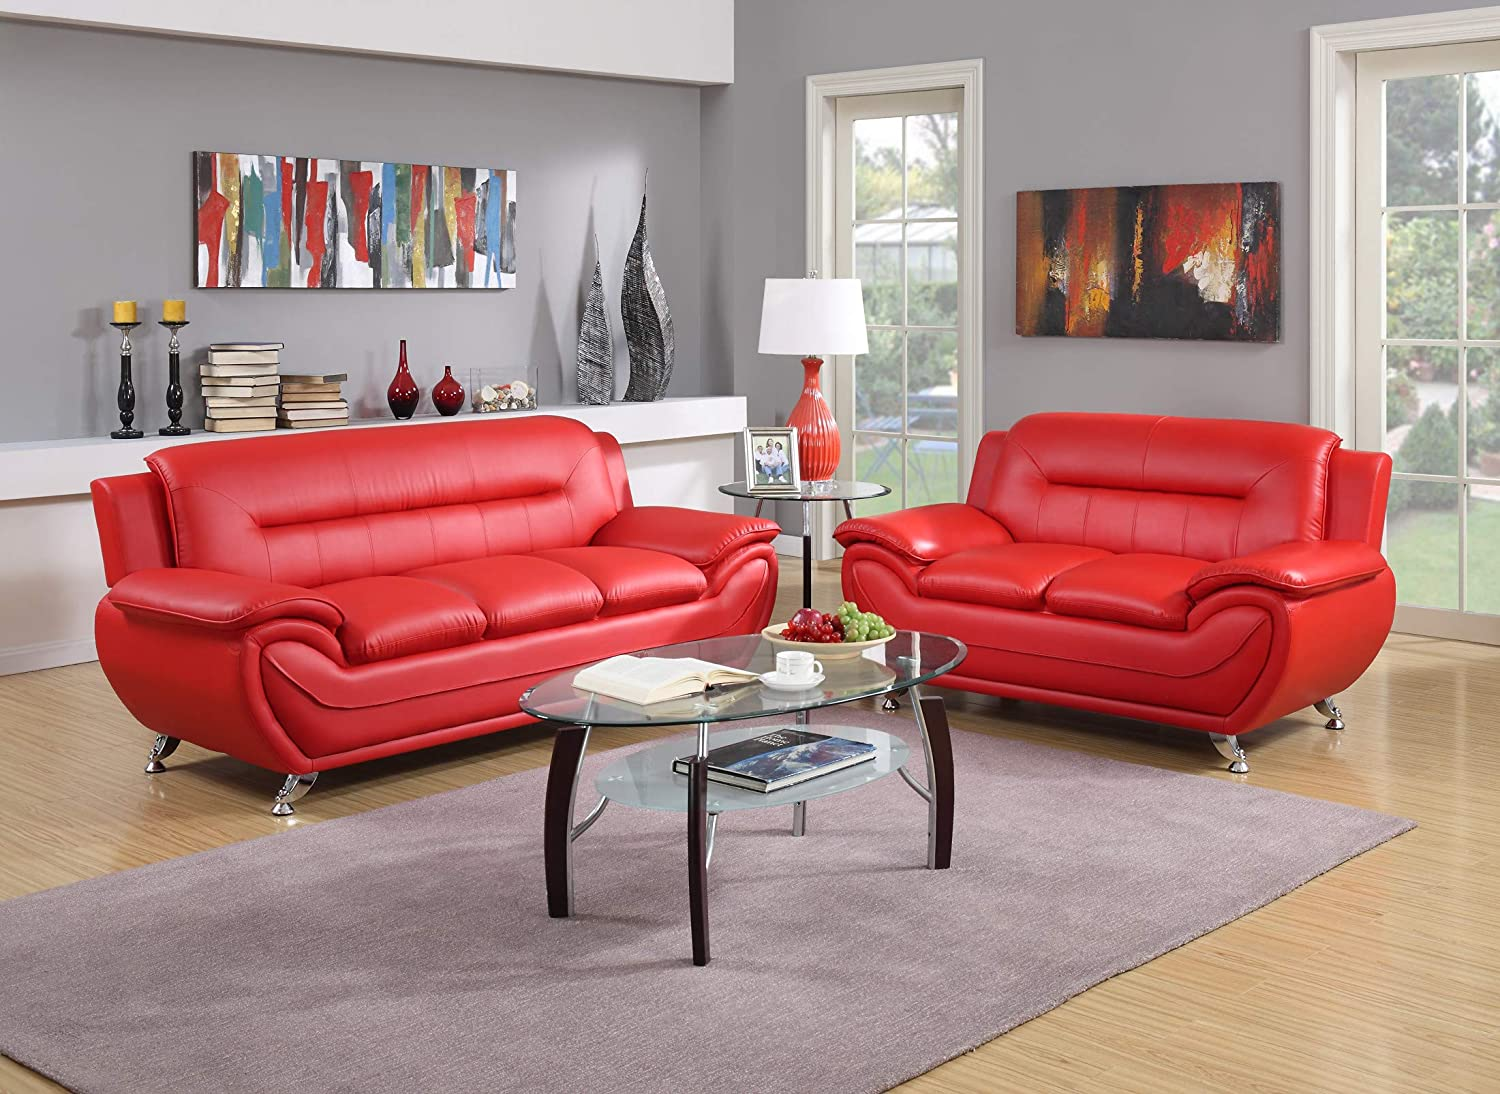 Amazon com gtu furniture contemporary bonded leather sofa loveseat set 2 piece sofa set red kitchen dining